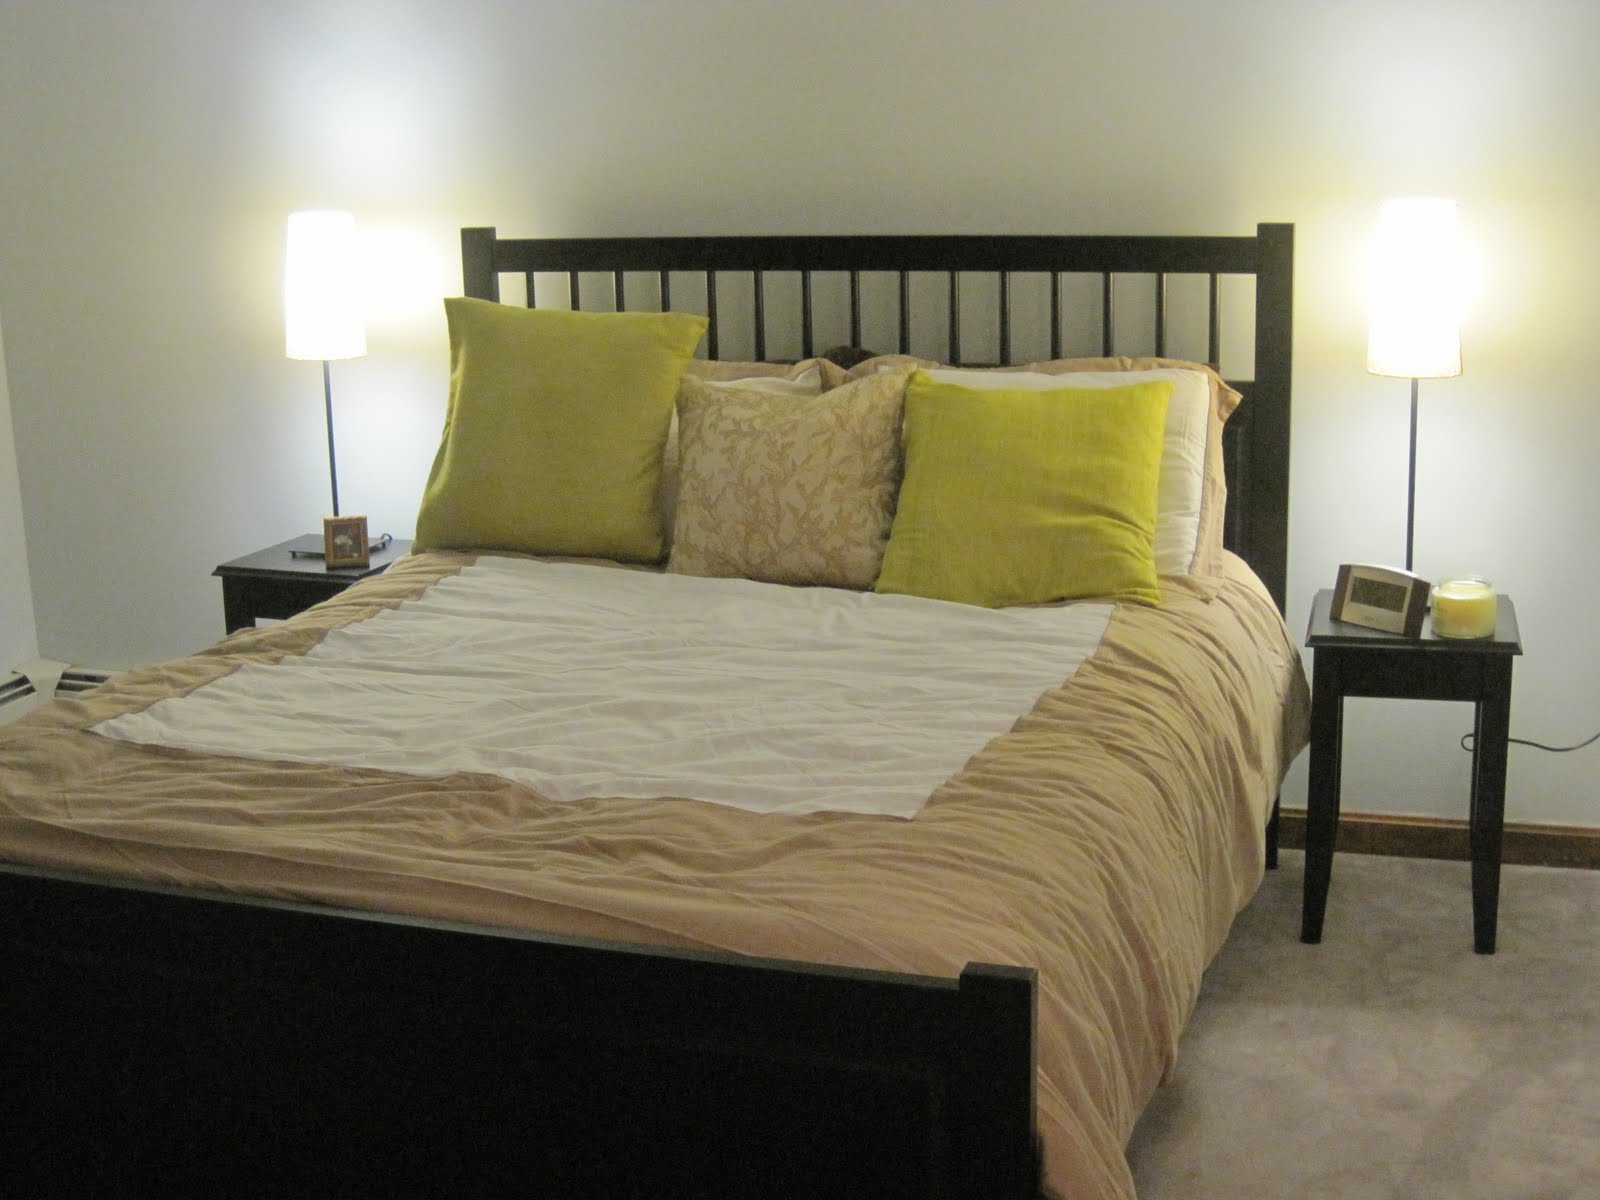 jemstaa: A $75 Ikea Guest Bedroom Makeover